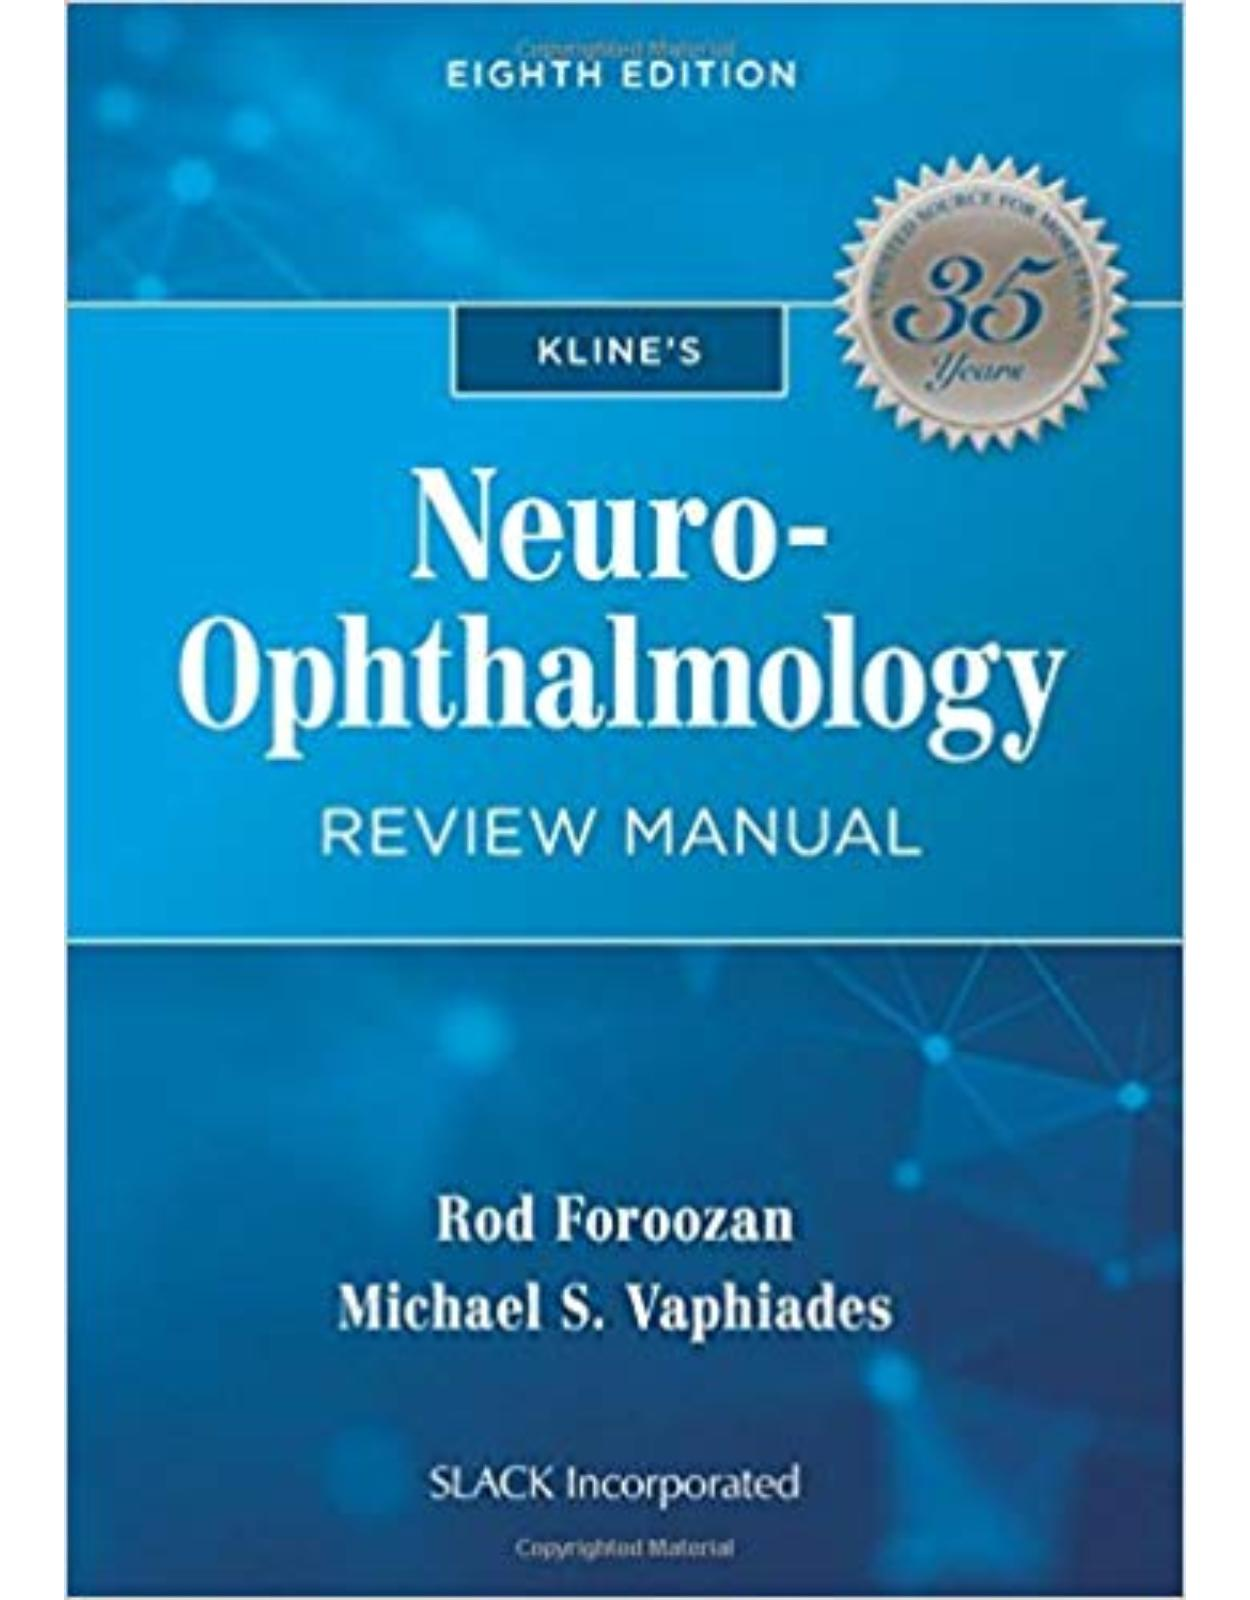 Kline's Neuro-Ophthalmology Review Manual